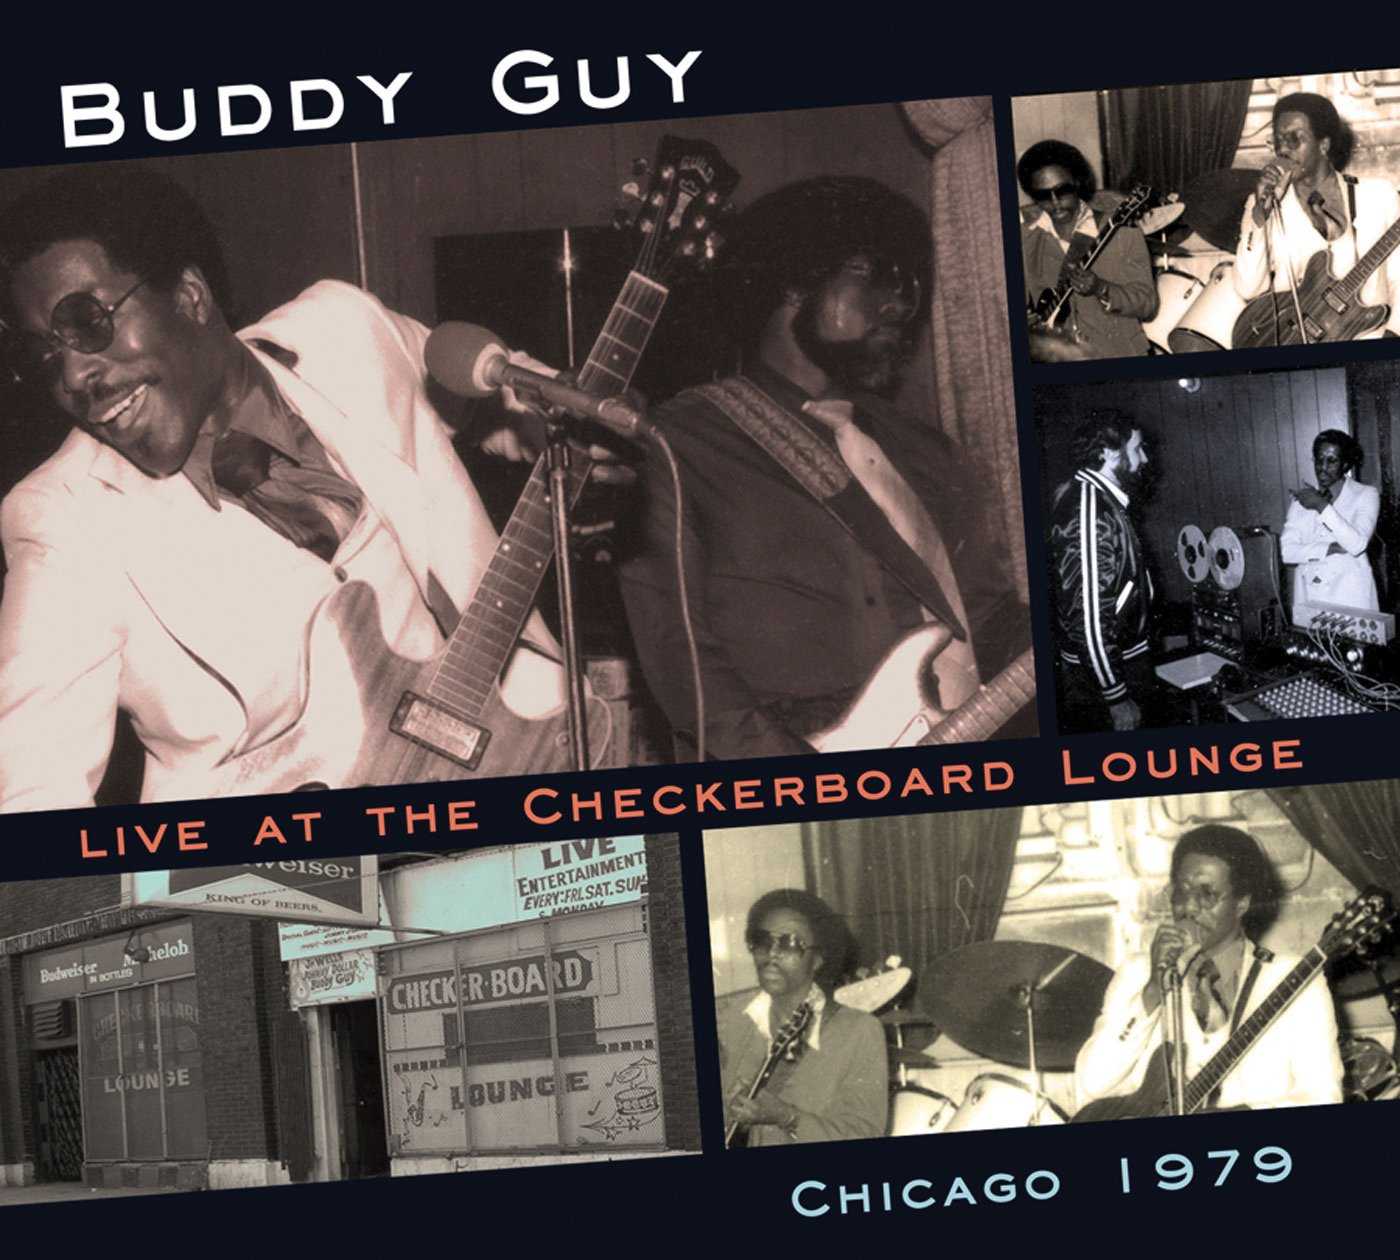 Live At The Checkerboard Lounge: Chicago 1979 by JSP